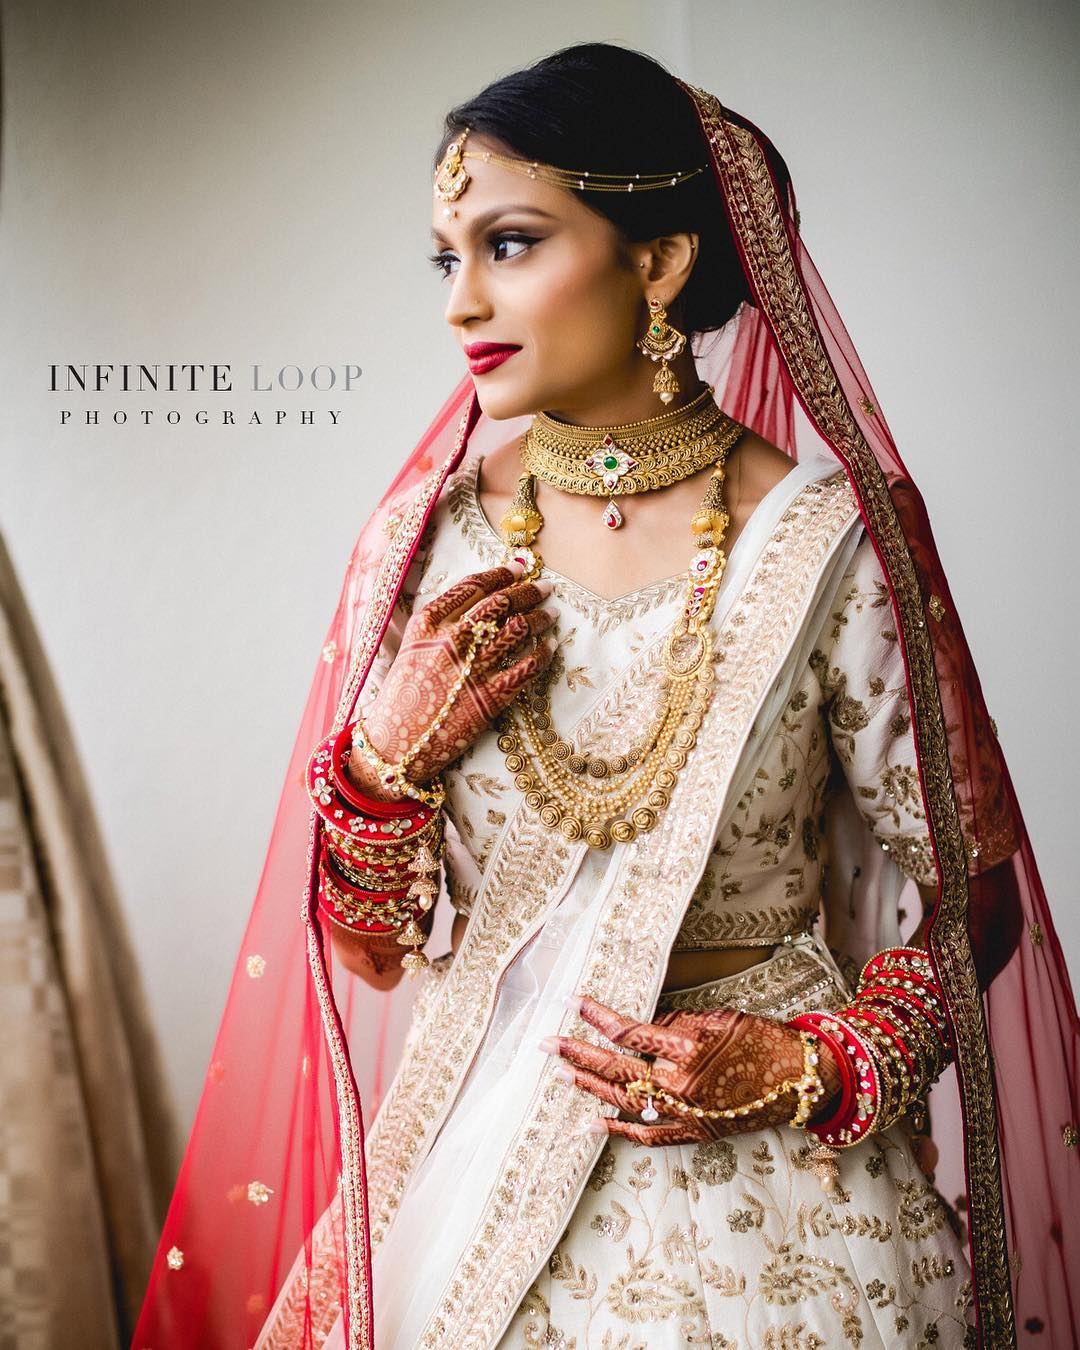 Mid close up of a bride wearing an Indian traditional dress